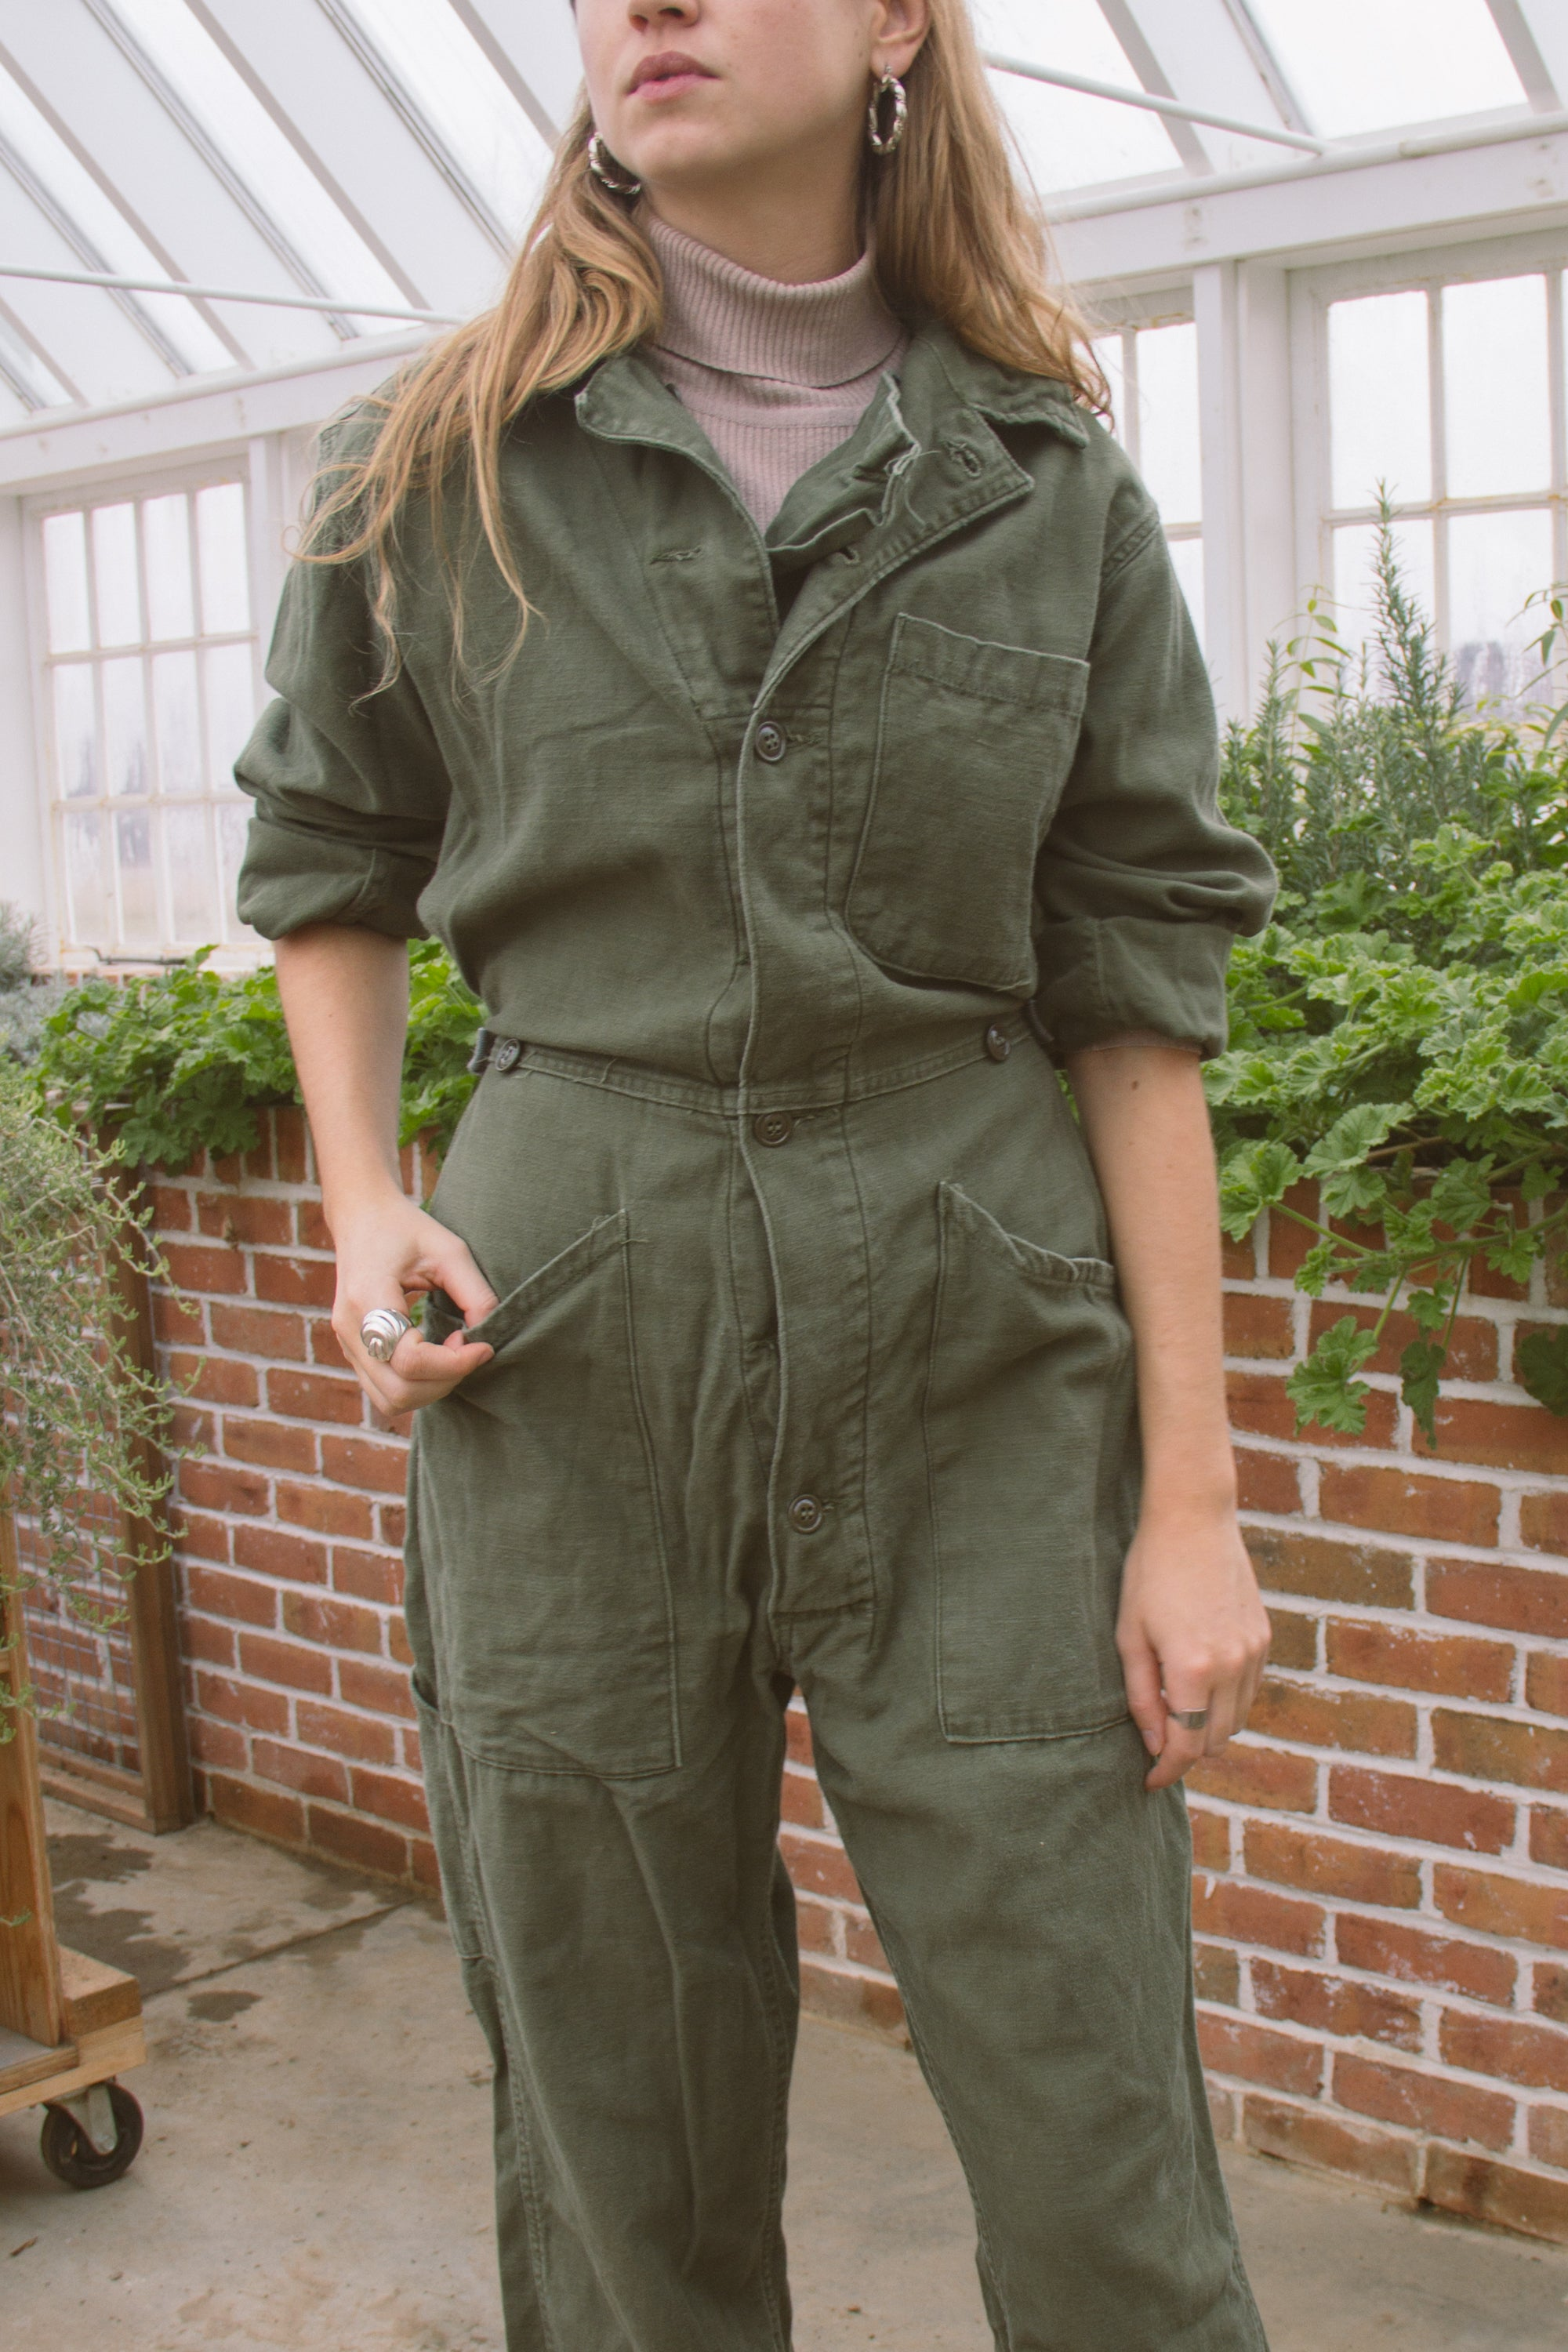 1970s Army Issued Cotton Coveralls